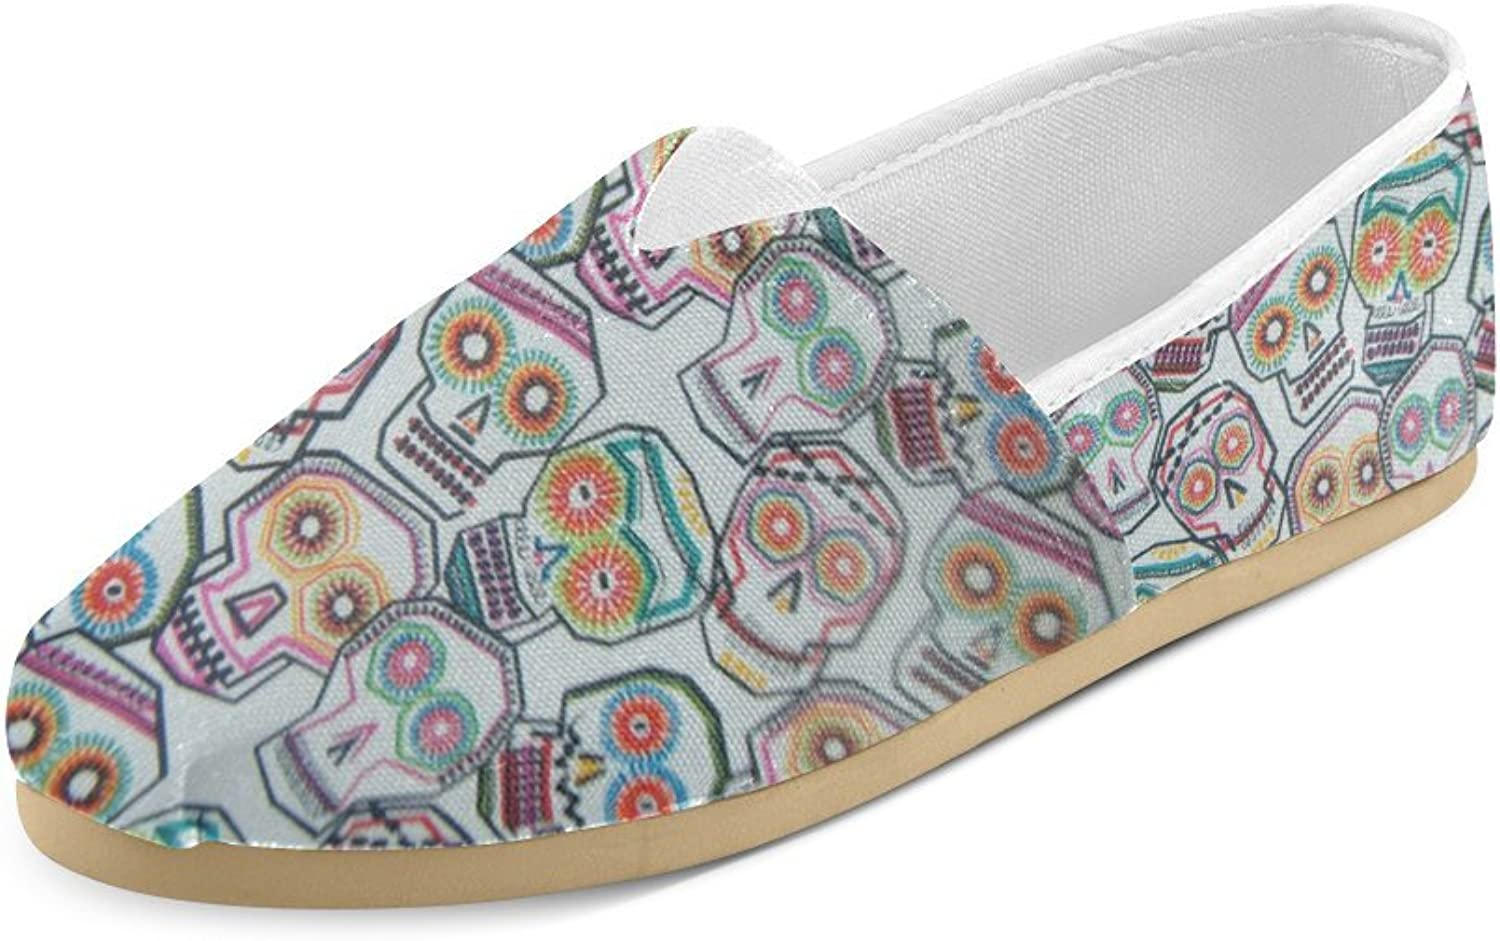 HUANGDAISY Unisex shoes colorful Tossed Skulls Casual Canvas Loafers for Bia Kids Girl Or Men